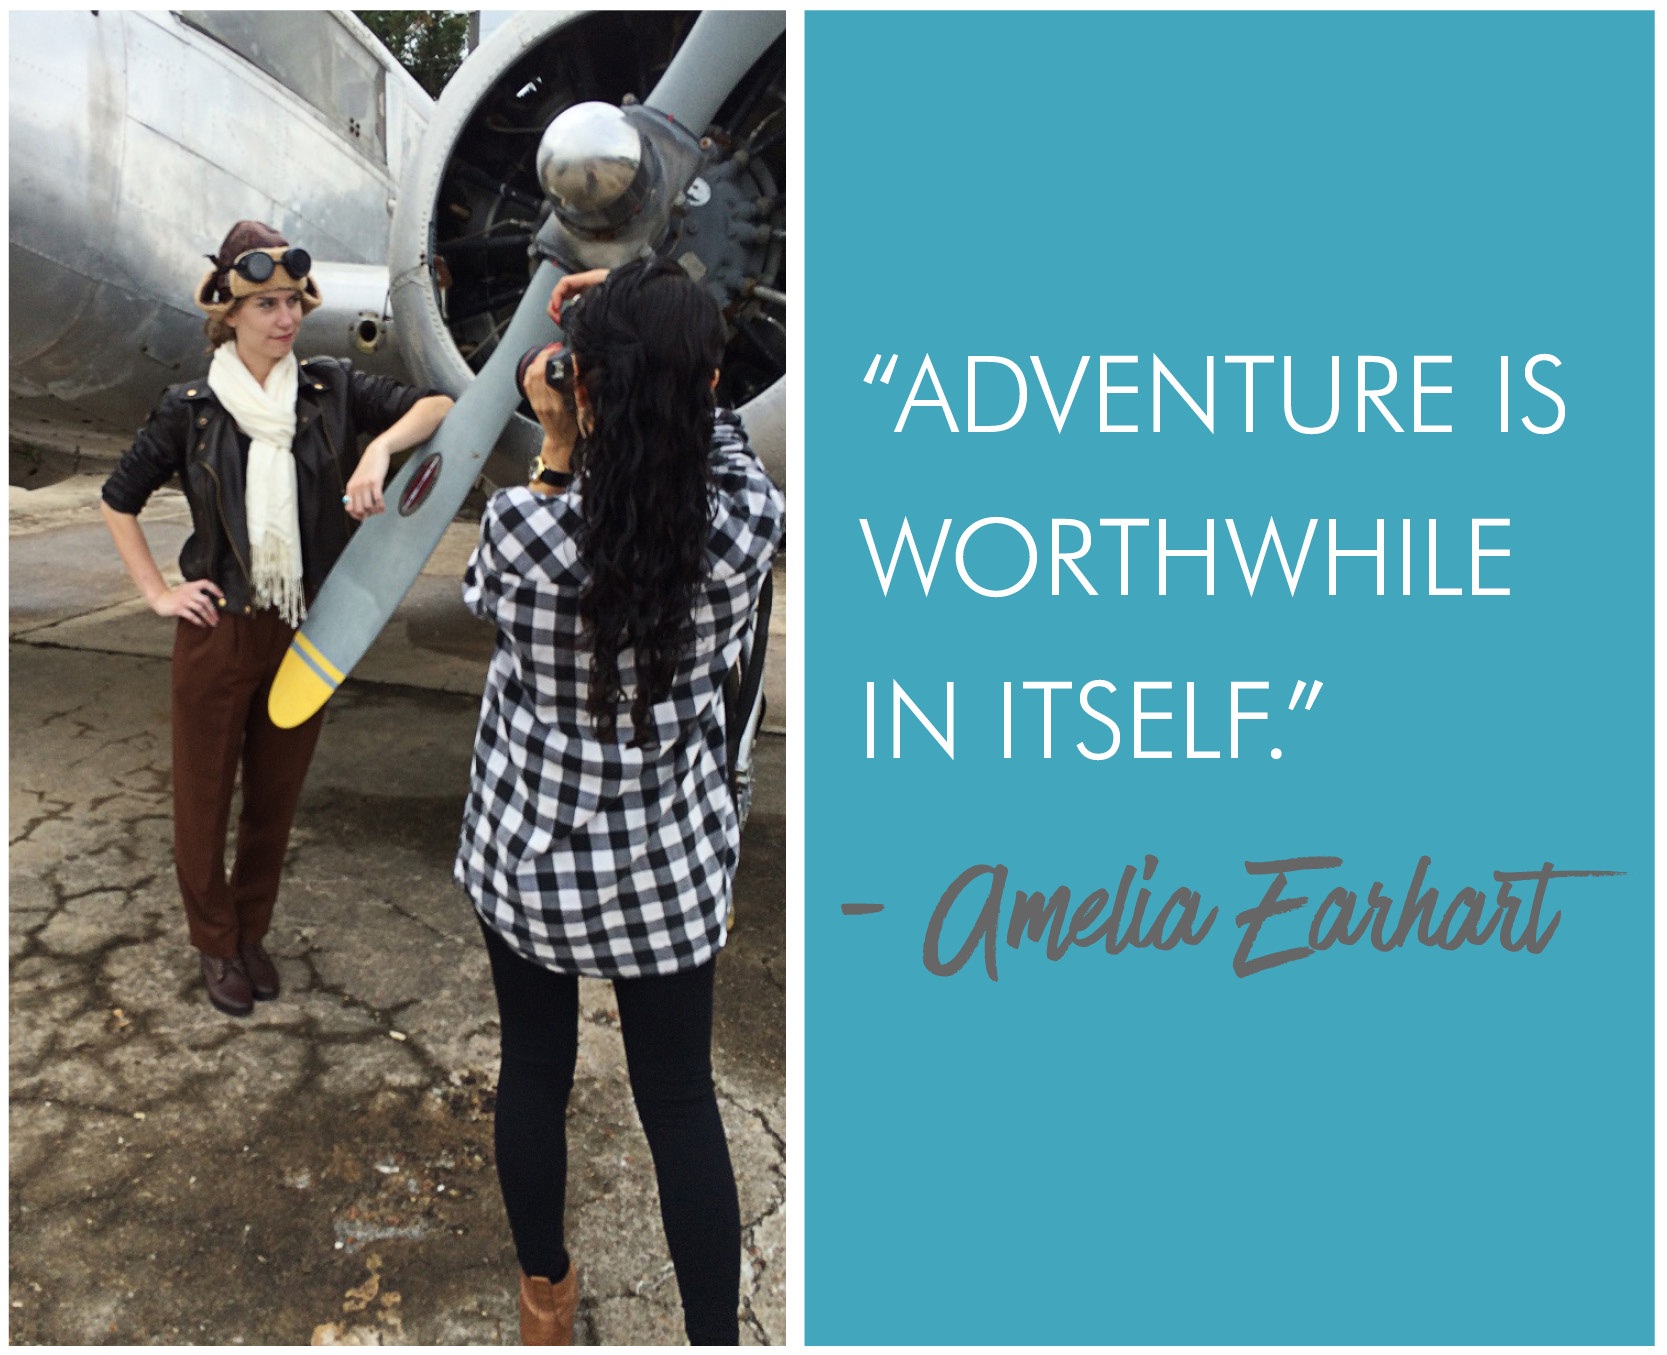 'Adventure is worthwhile in itself' Amelia Earhart quote and behind the scenes photo